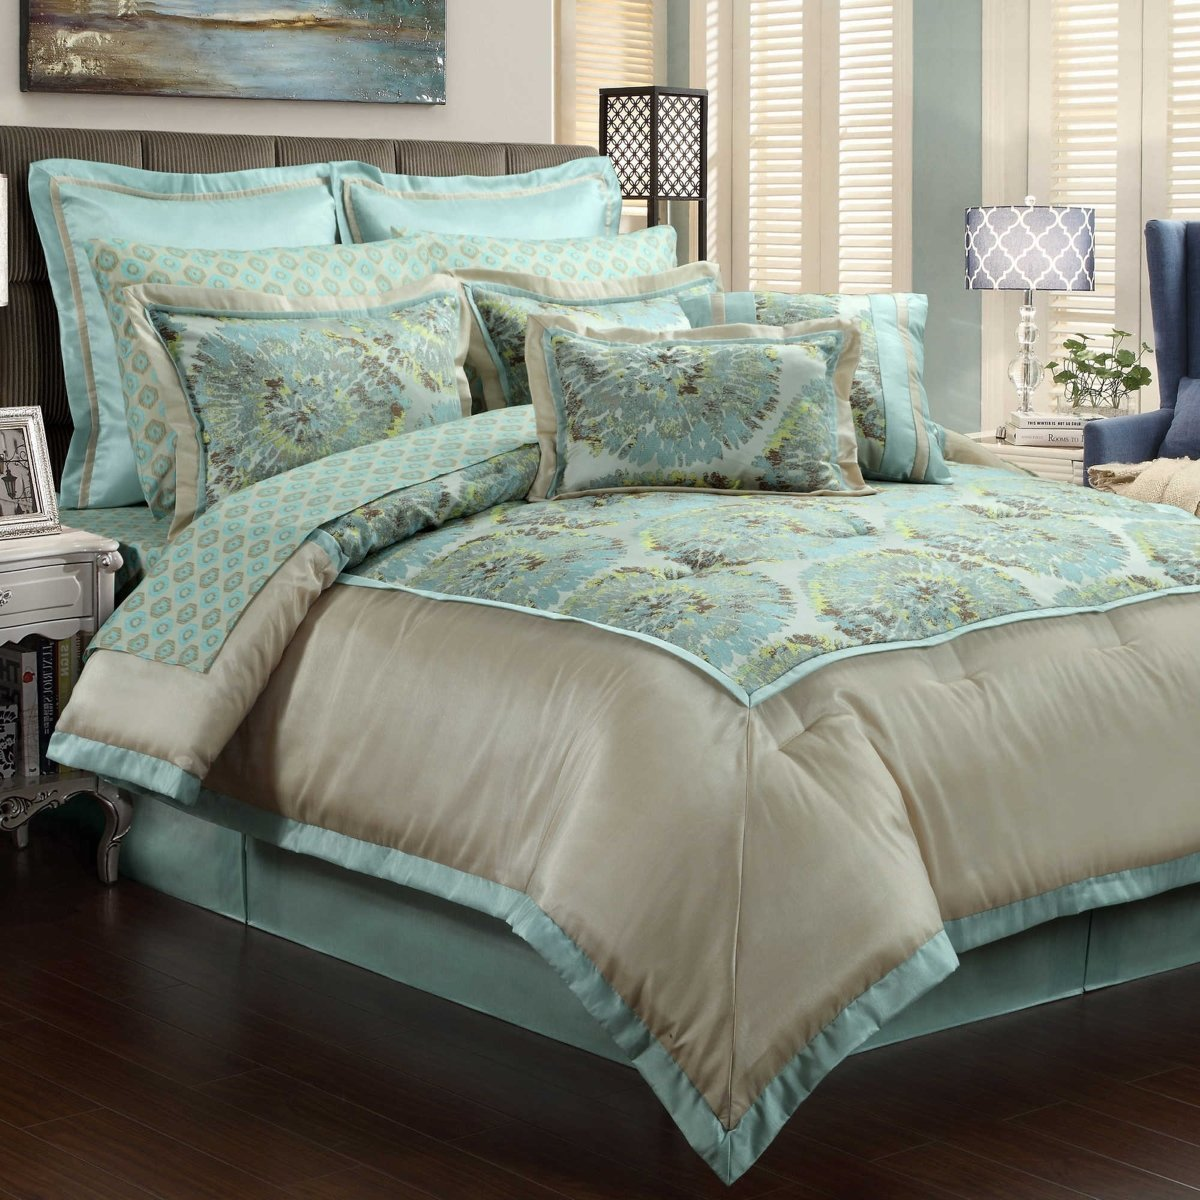 Queen bedding sets freedom of life like a queen home for Bed set queen furniture